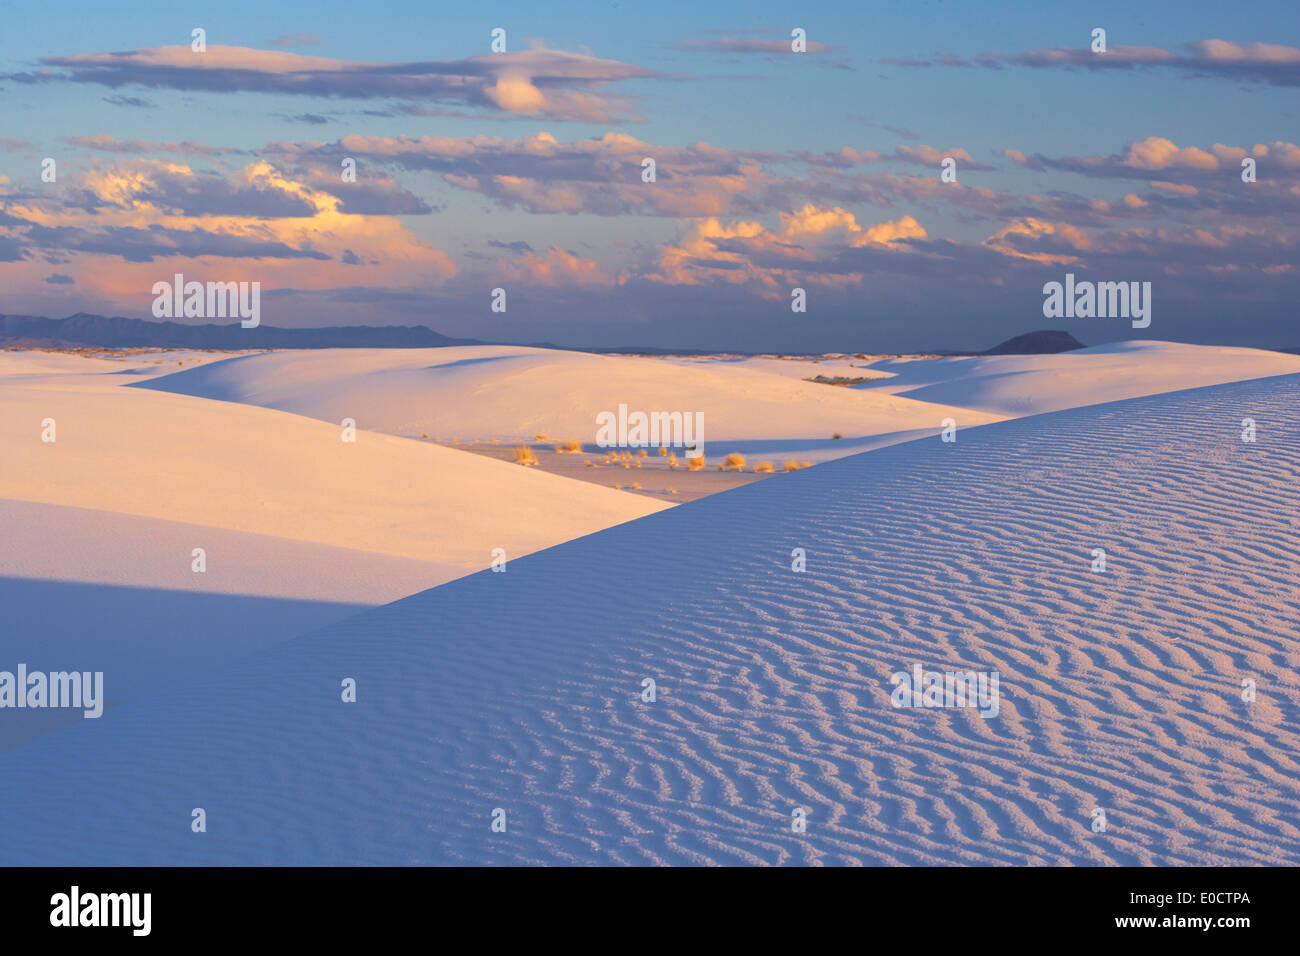 Sunset at White Sands National Monument, New Mexico, USA, America - Stock Image